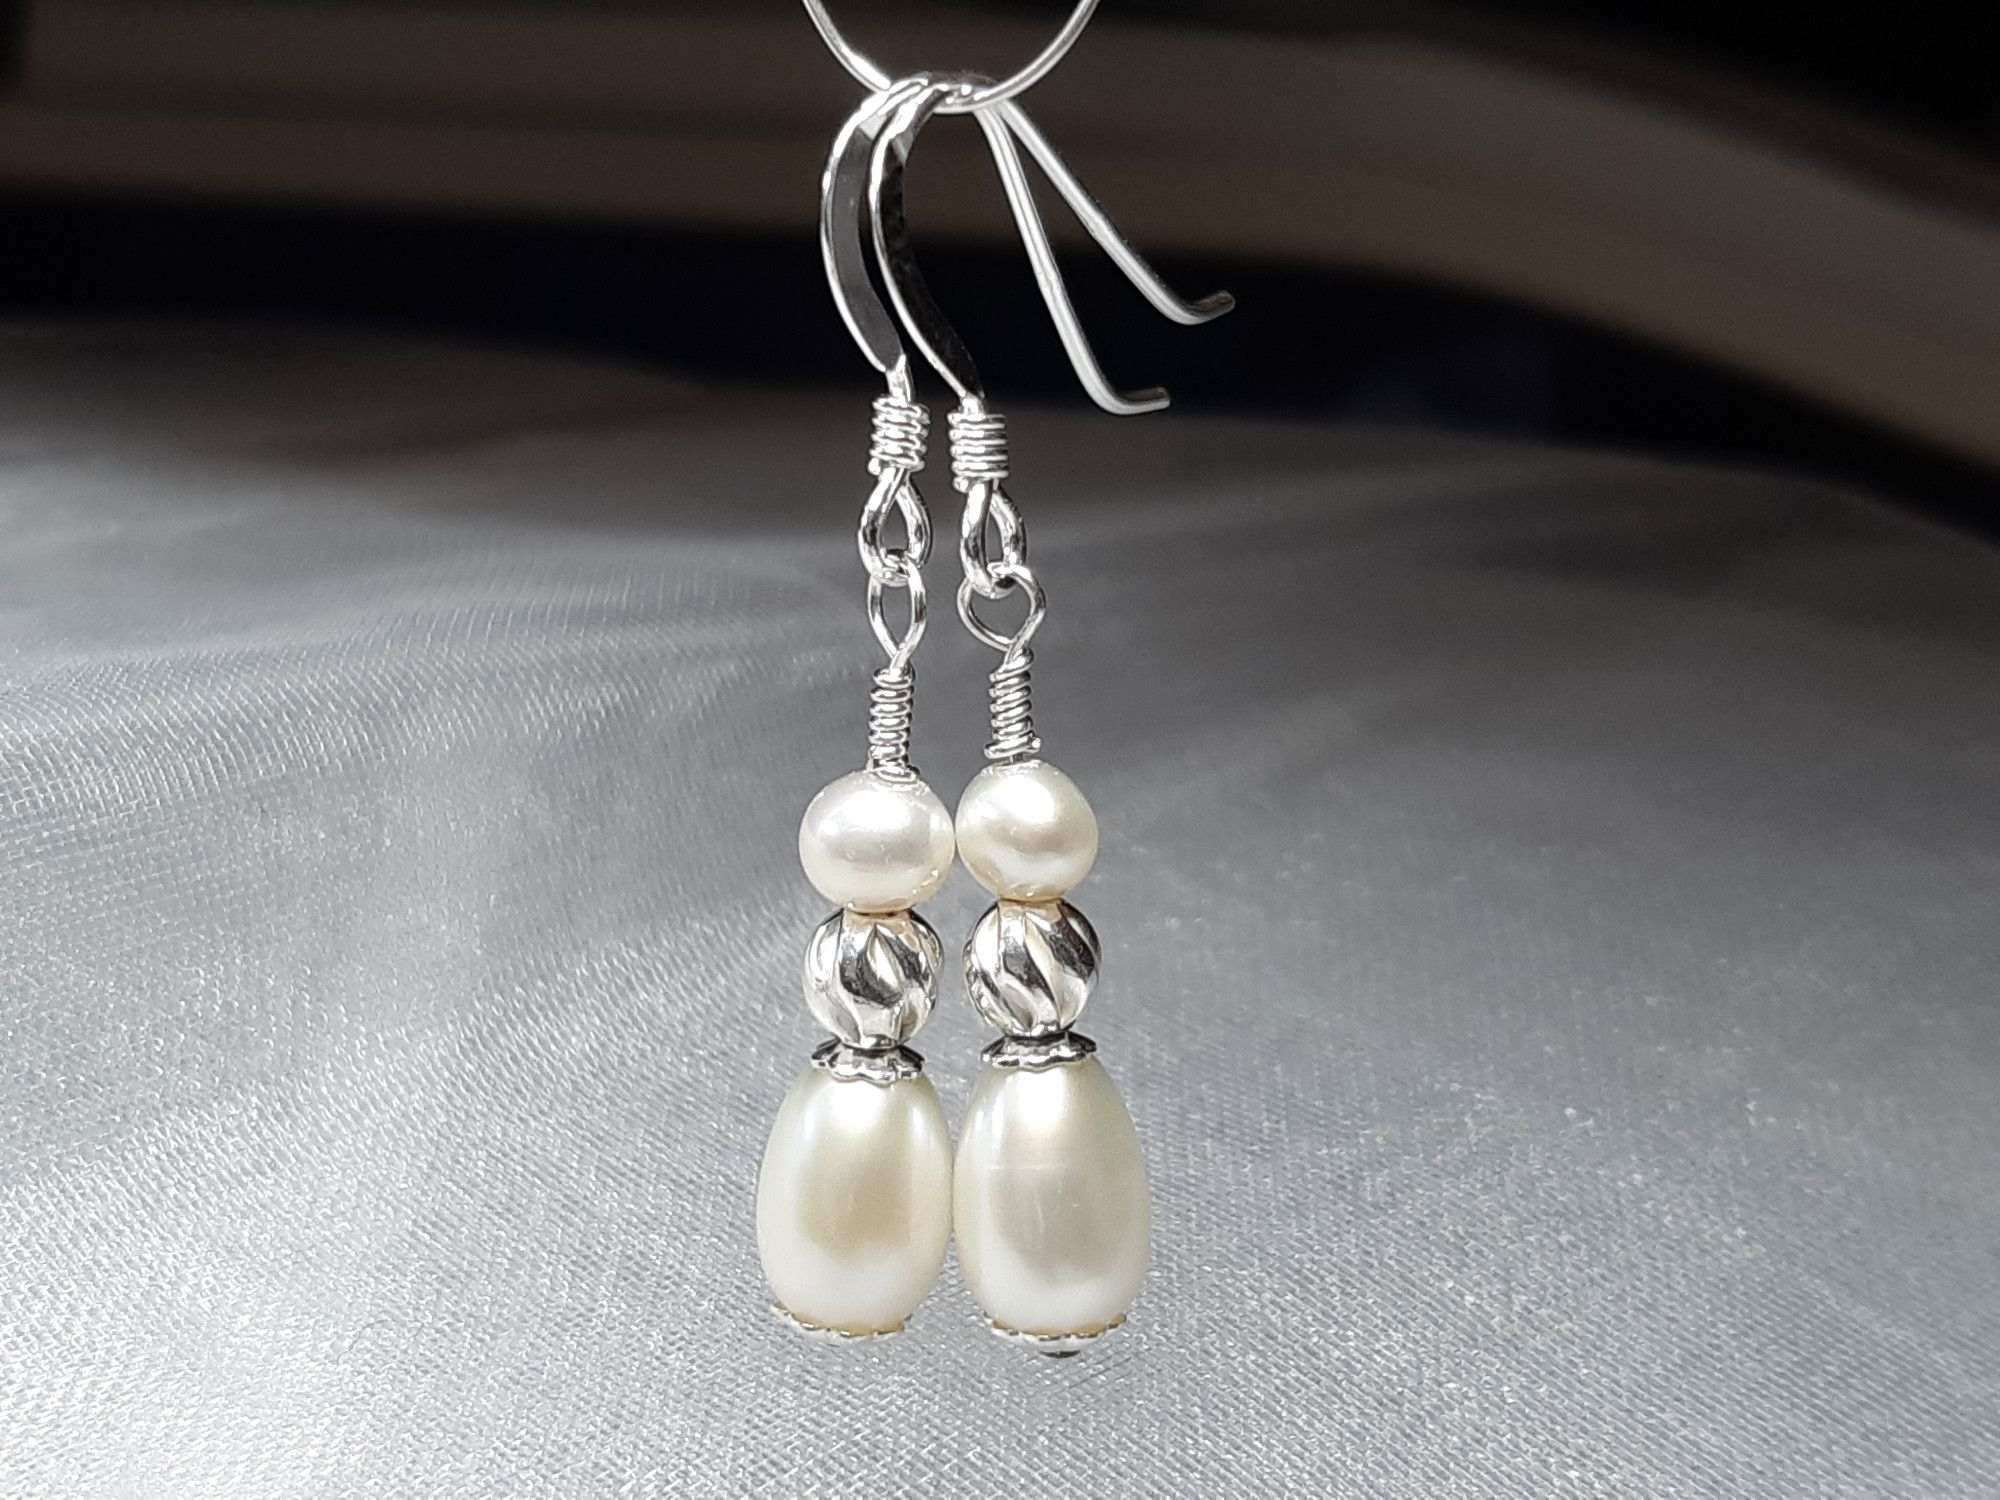 Occasion-bridal-pearl drop earrings with sterling silver-2.jpg